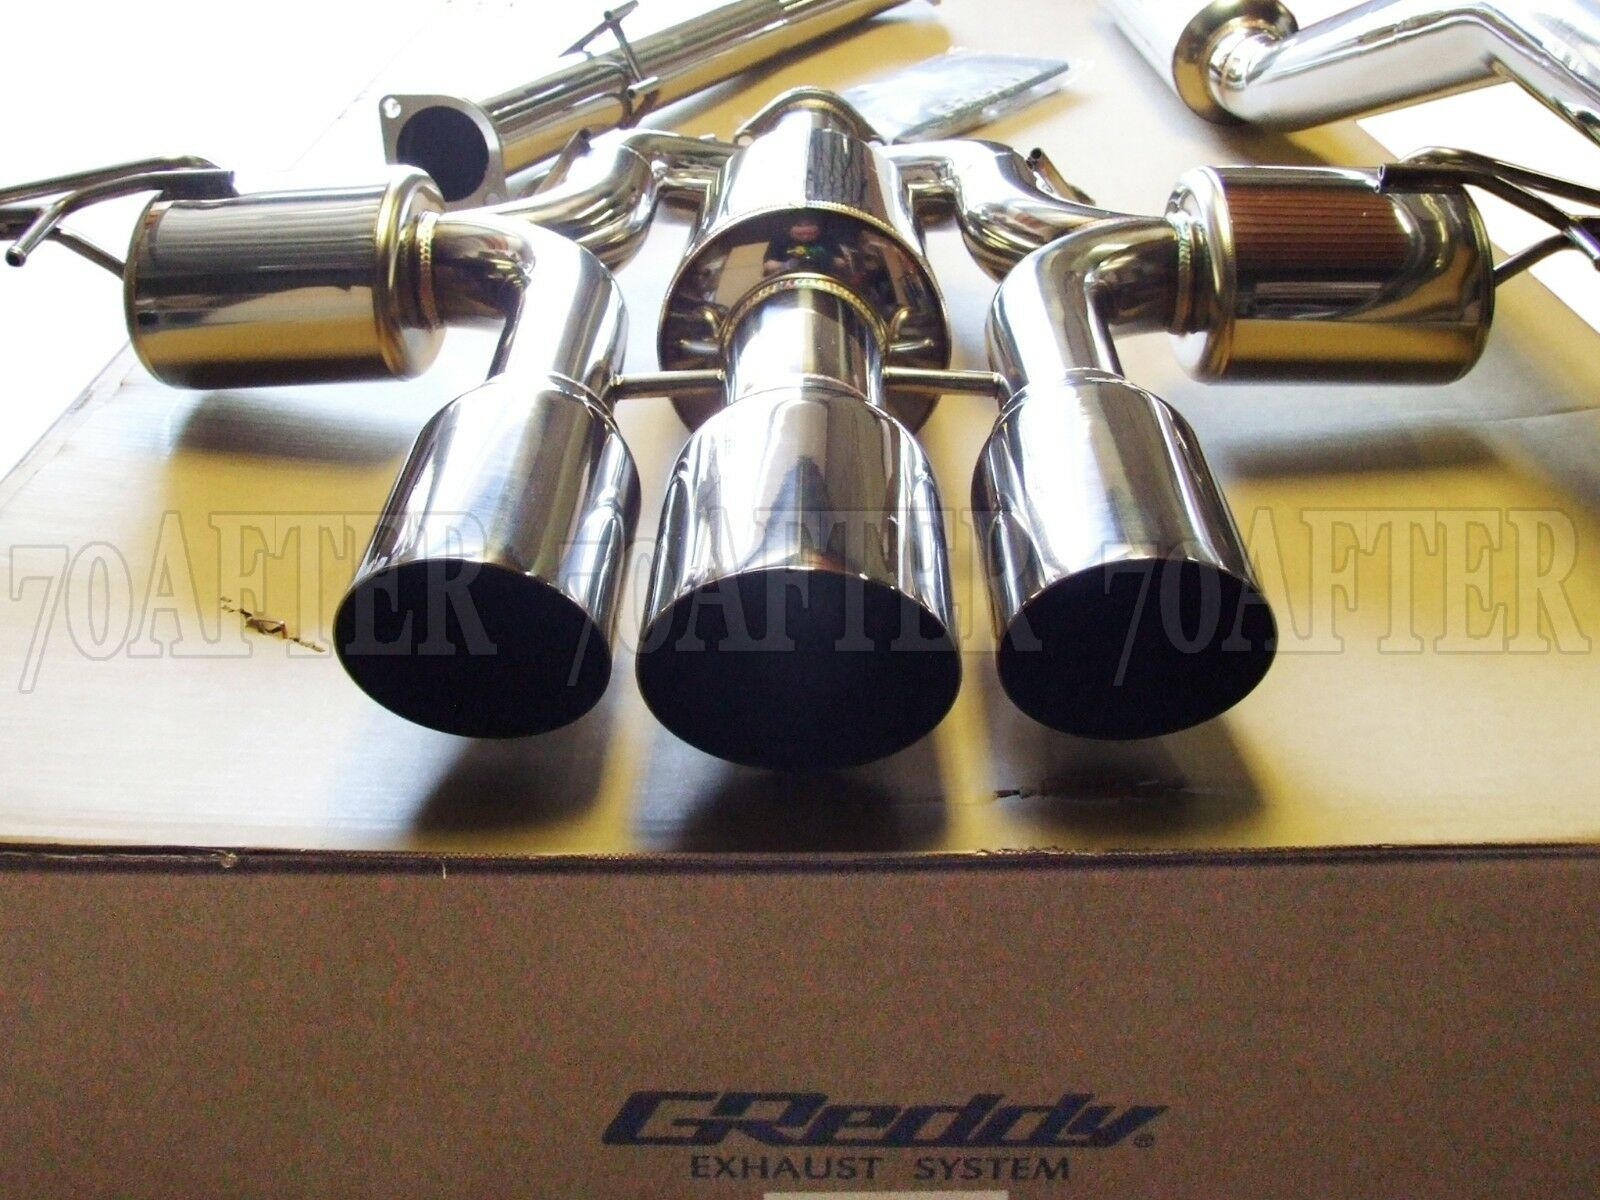 Greddy Supreme Sp Hg Cat Back Exhaust For Civic Type R Fk8 Pickup Muffler 1 Of 3only Available